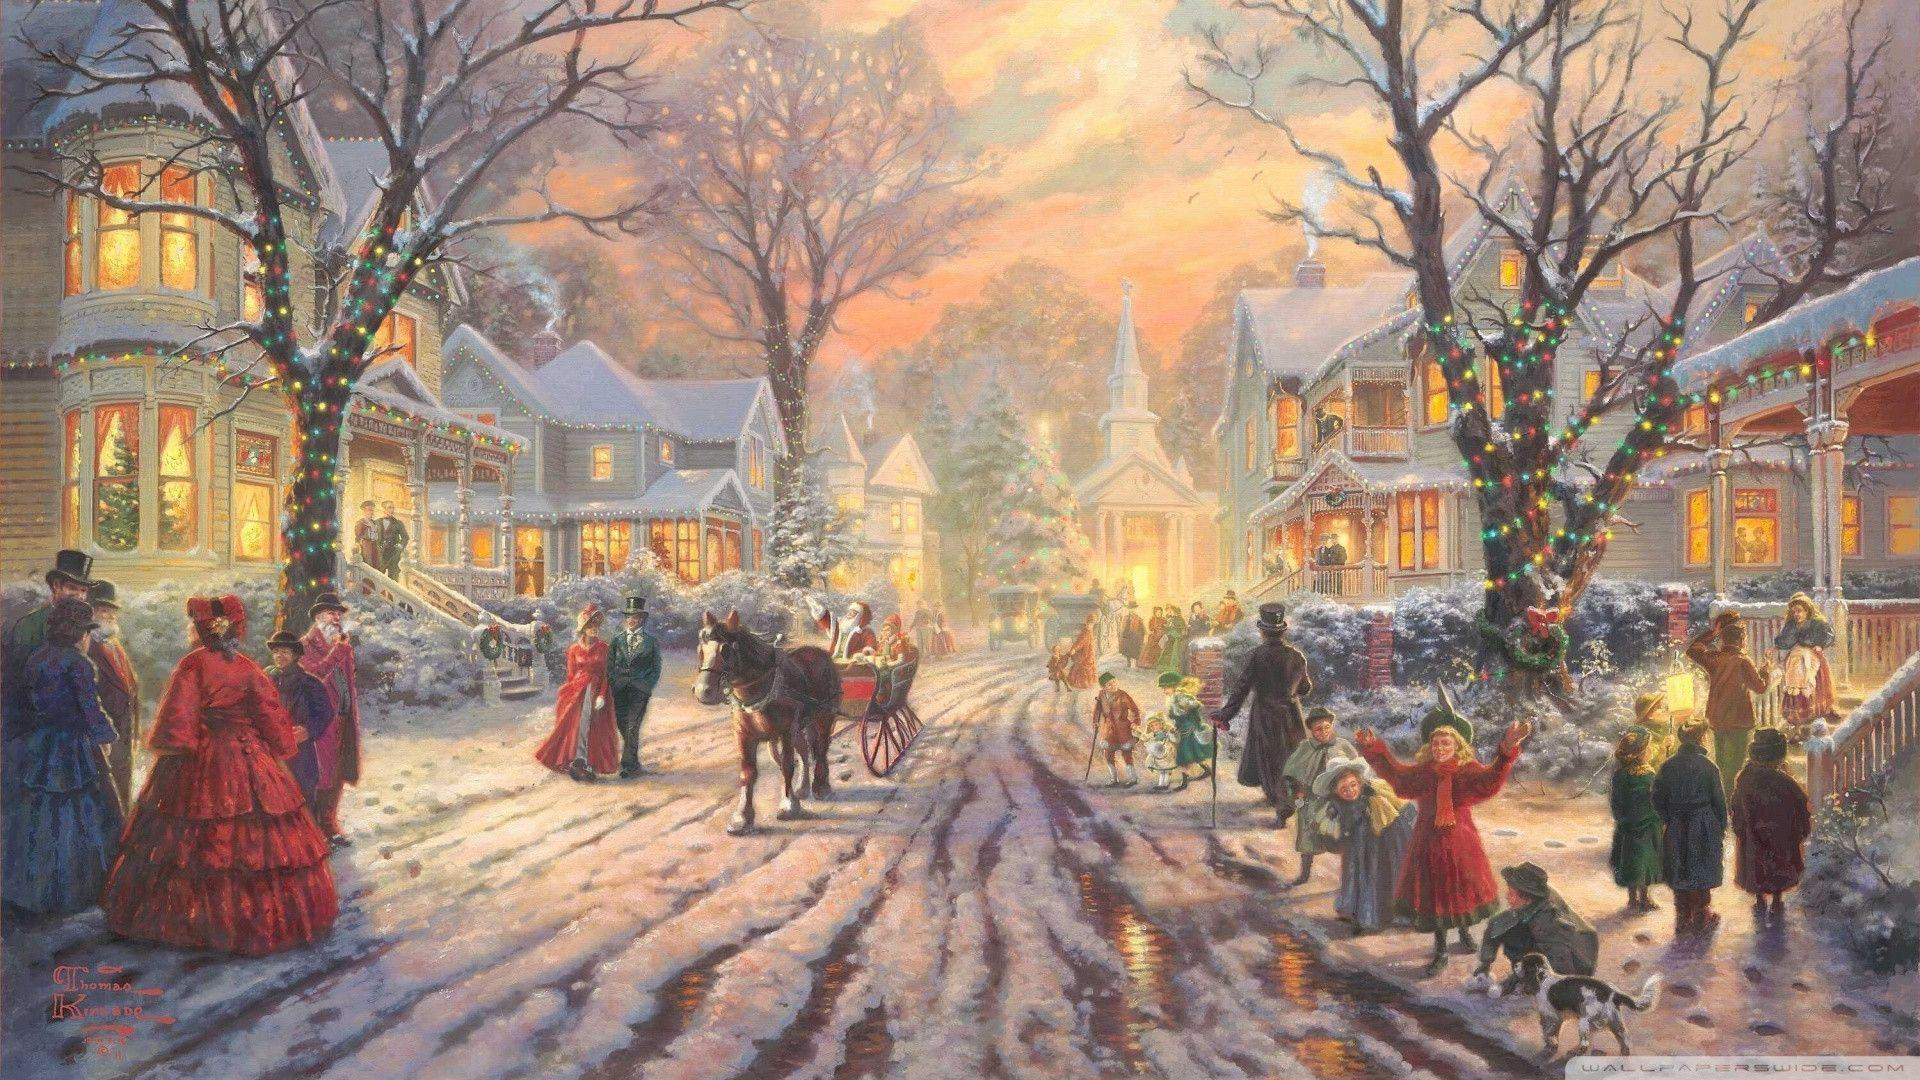 Download Victorian Christmas Carol By Thomas Kinkade Wallpapers